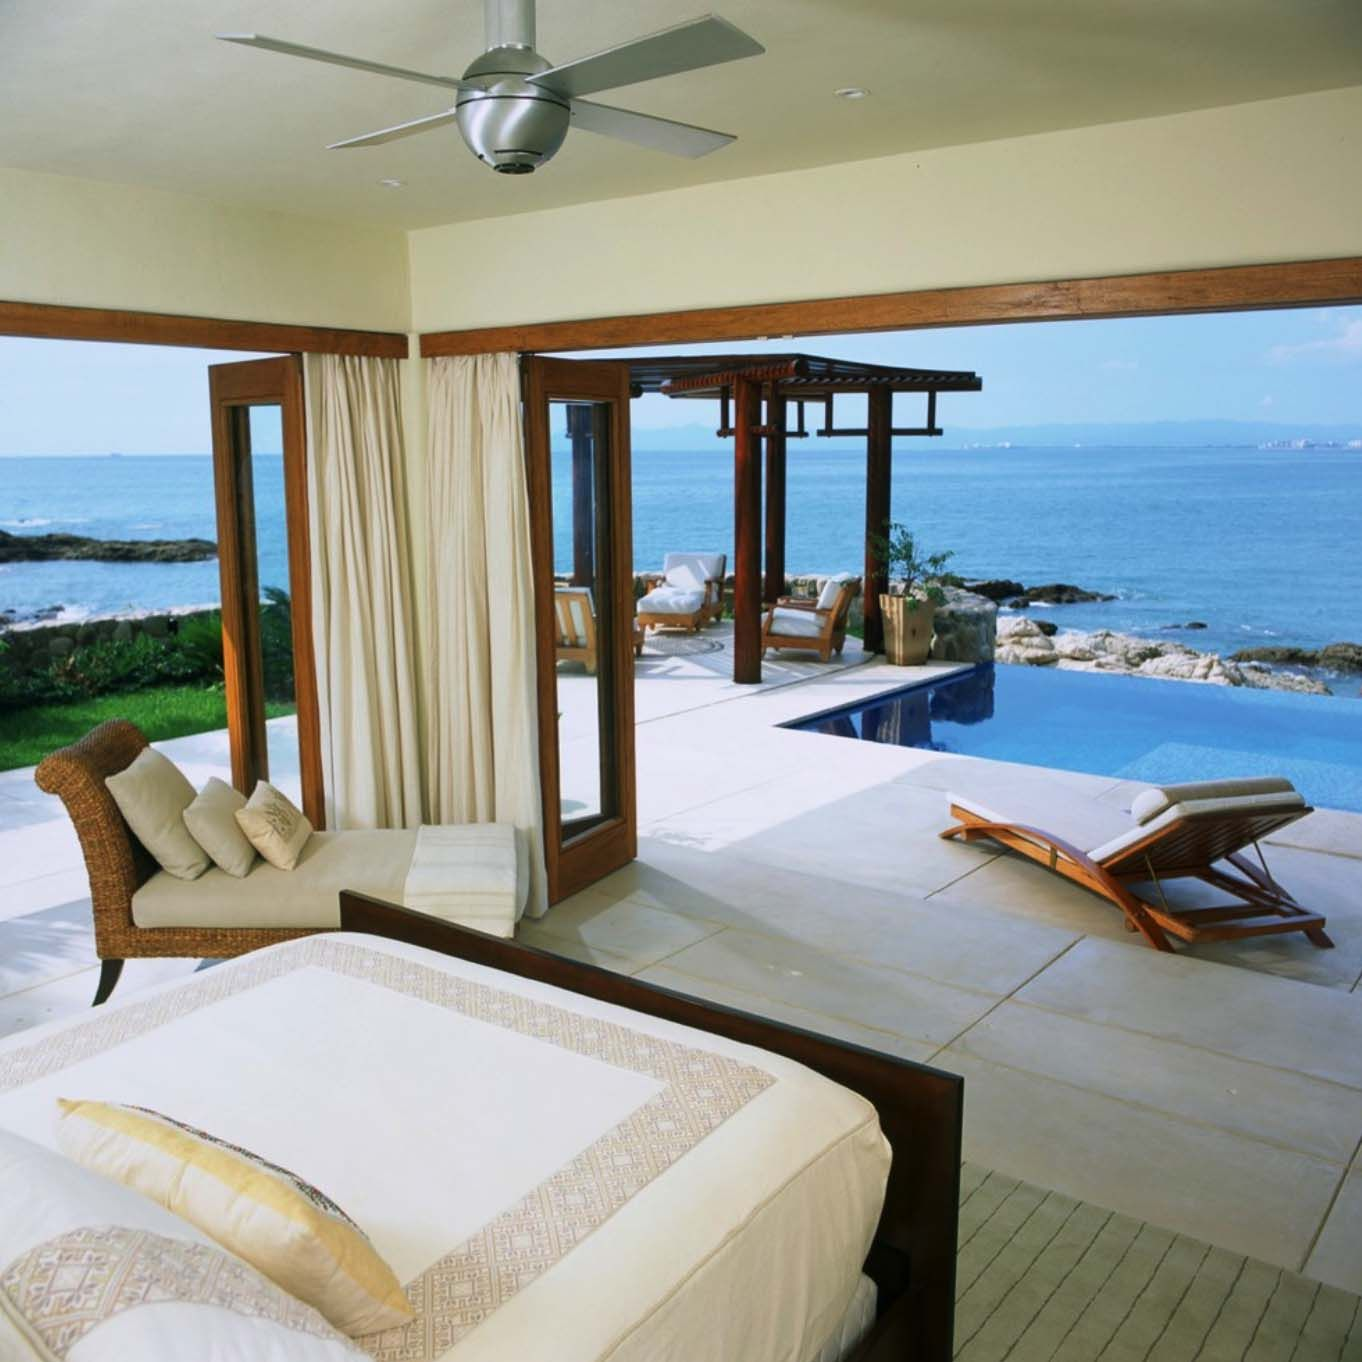 Beautiful Spacious Master Bedrooms: 33 Sun-drenched Bedrooms With Mesmerizing Ocean Views